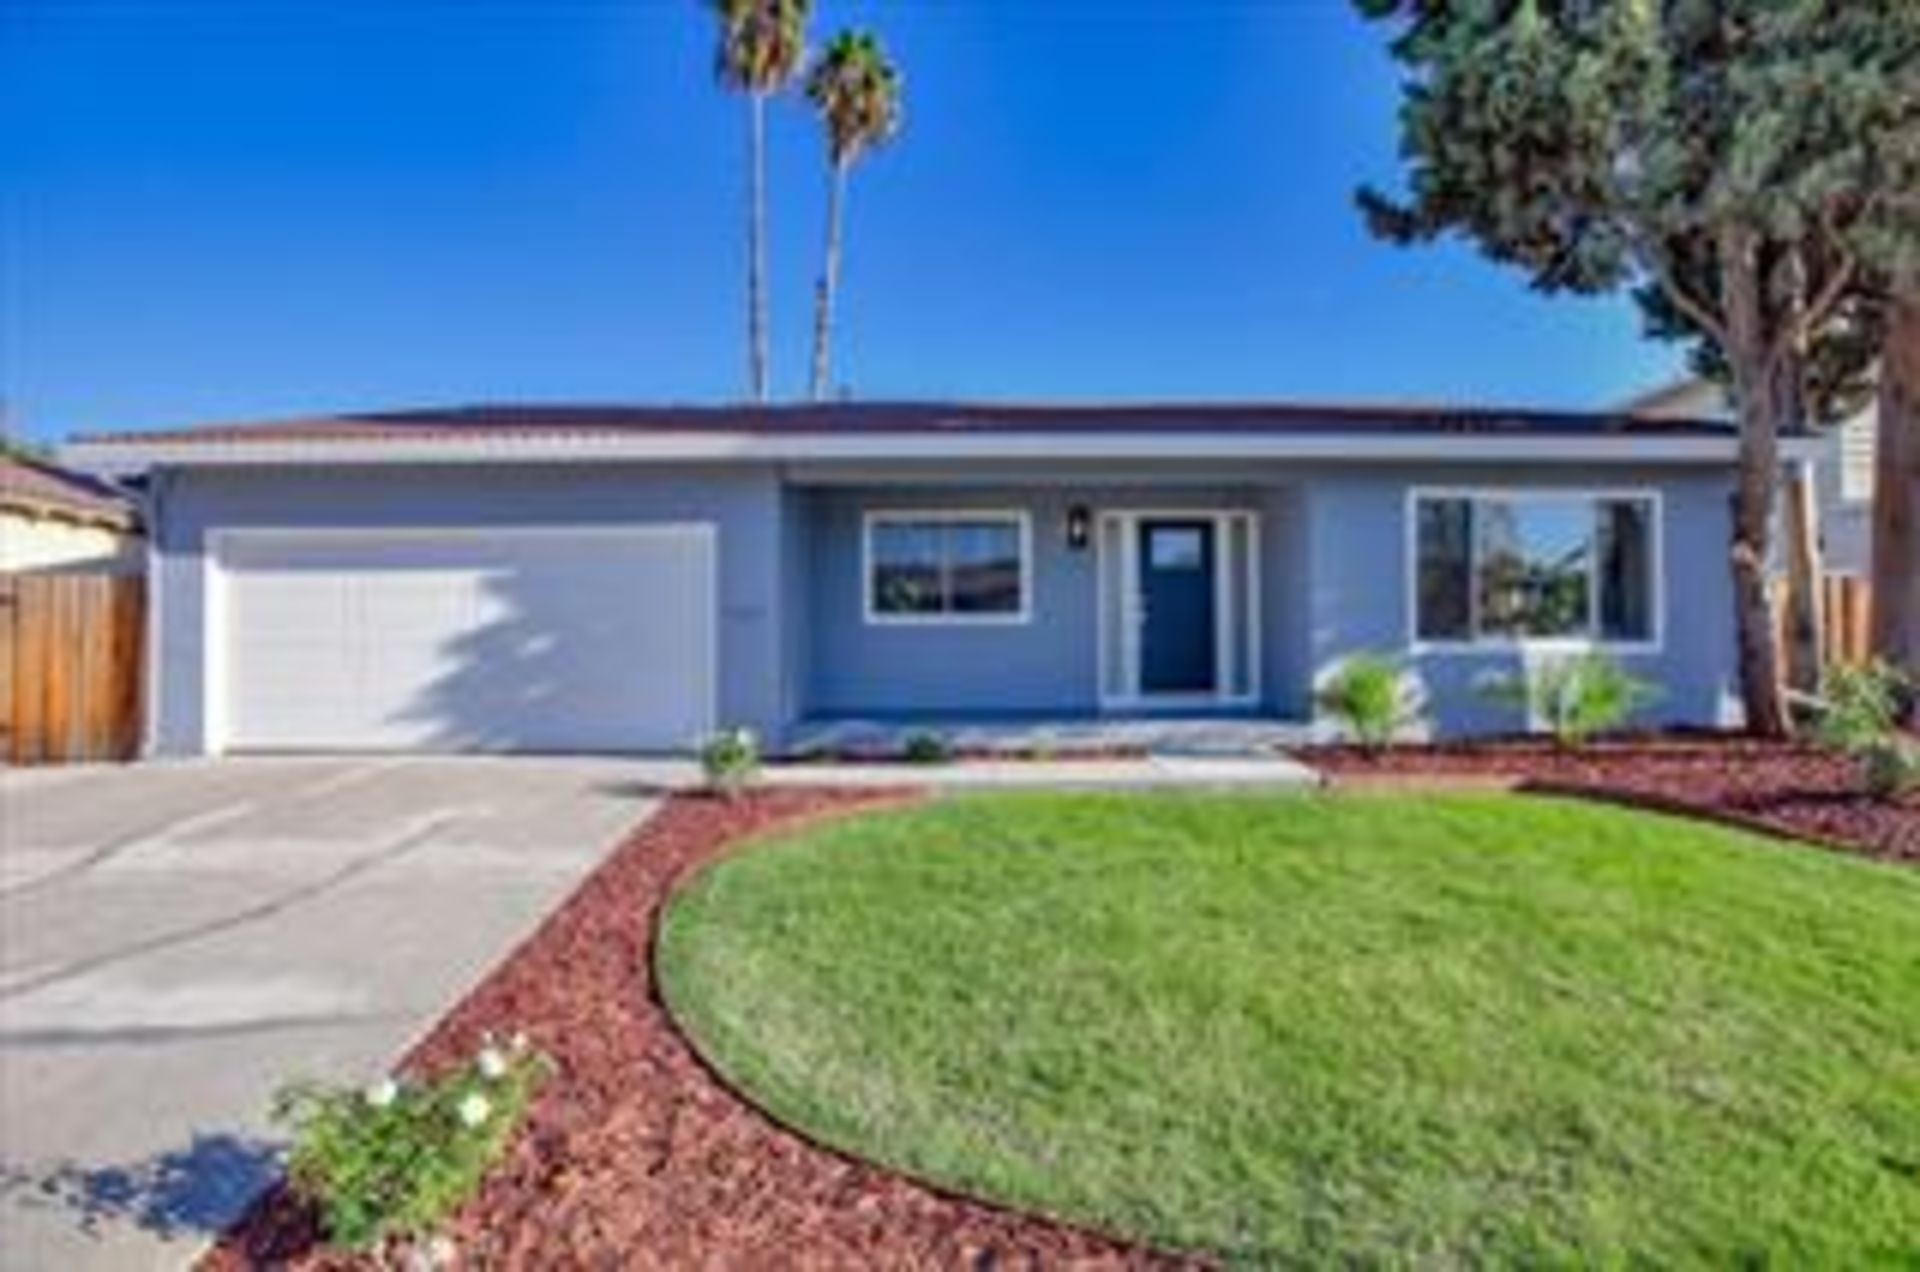 Sold! – 530 Suisse, San Jose – So excited for our first time home buyers!